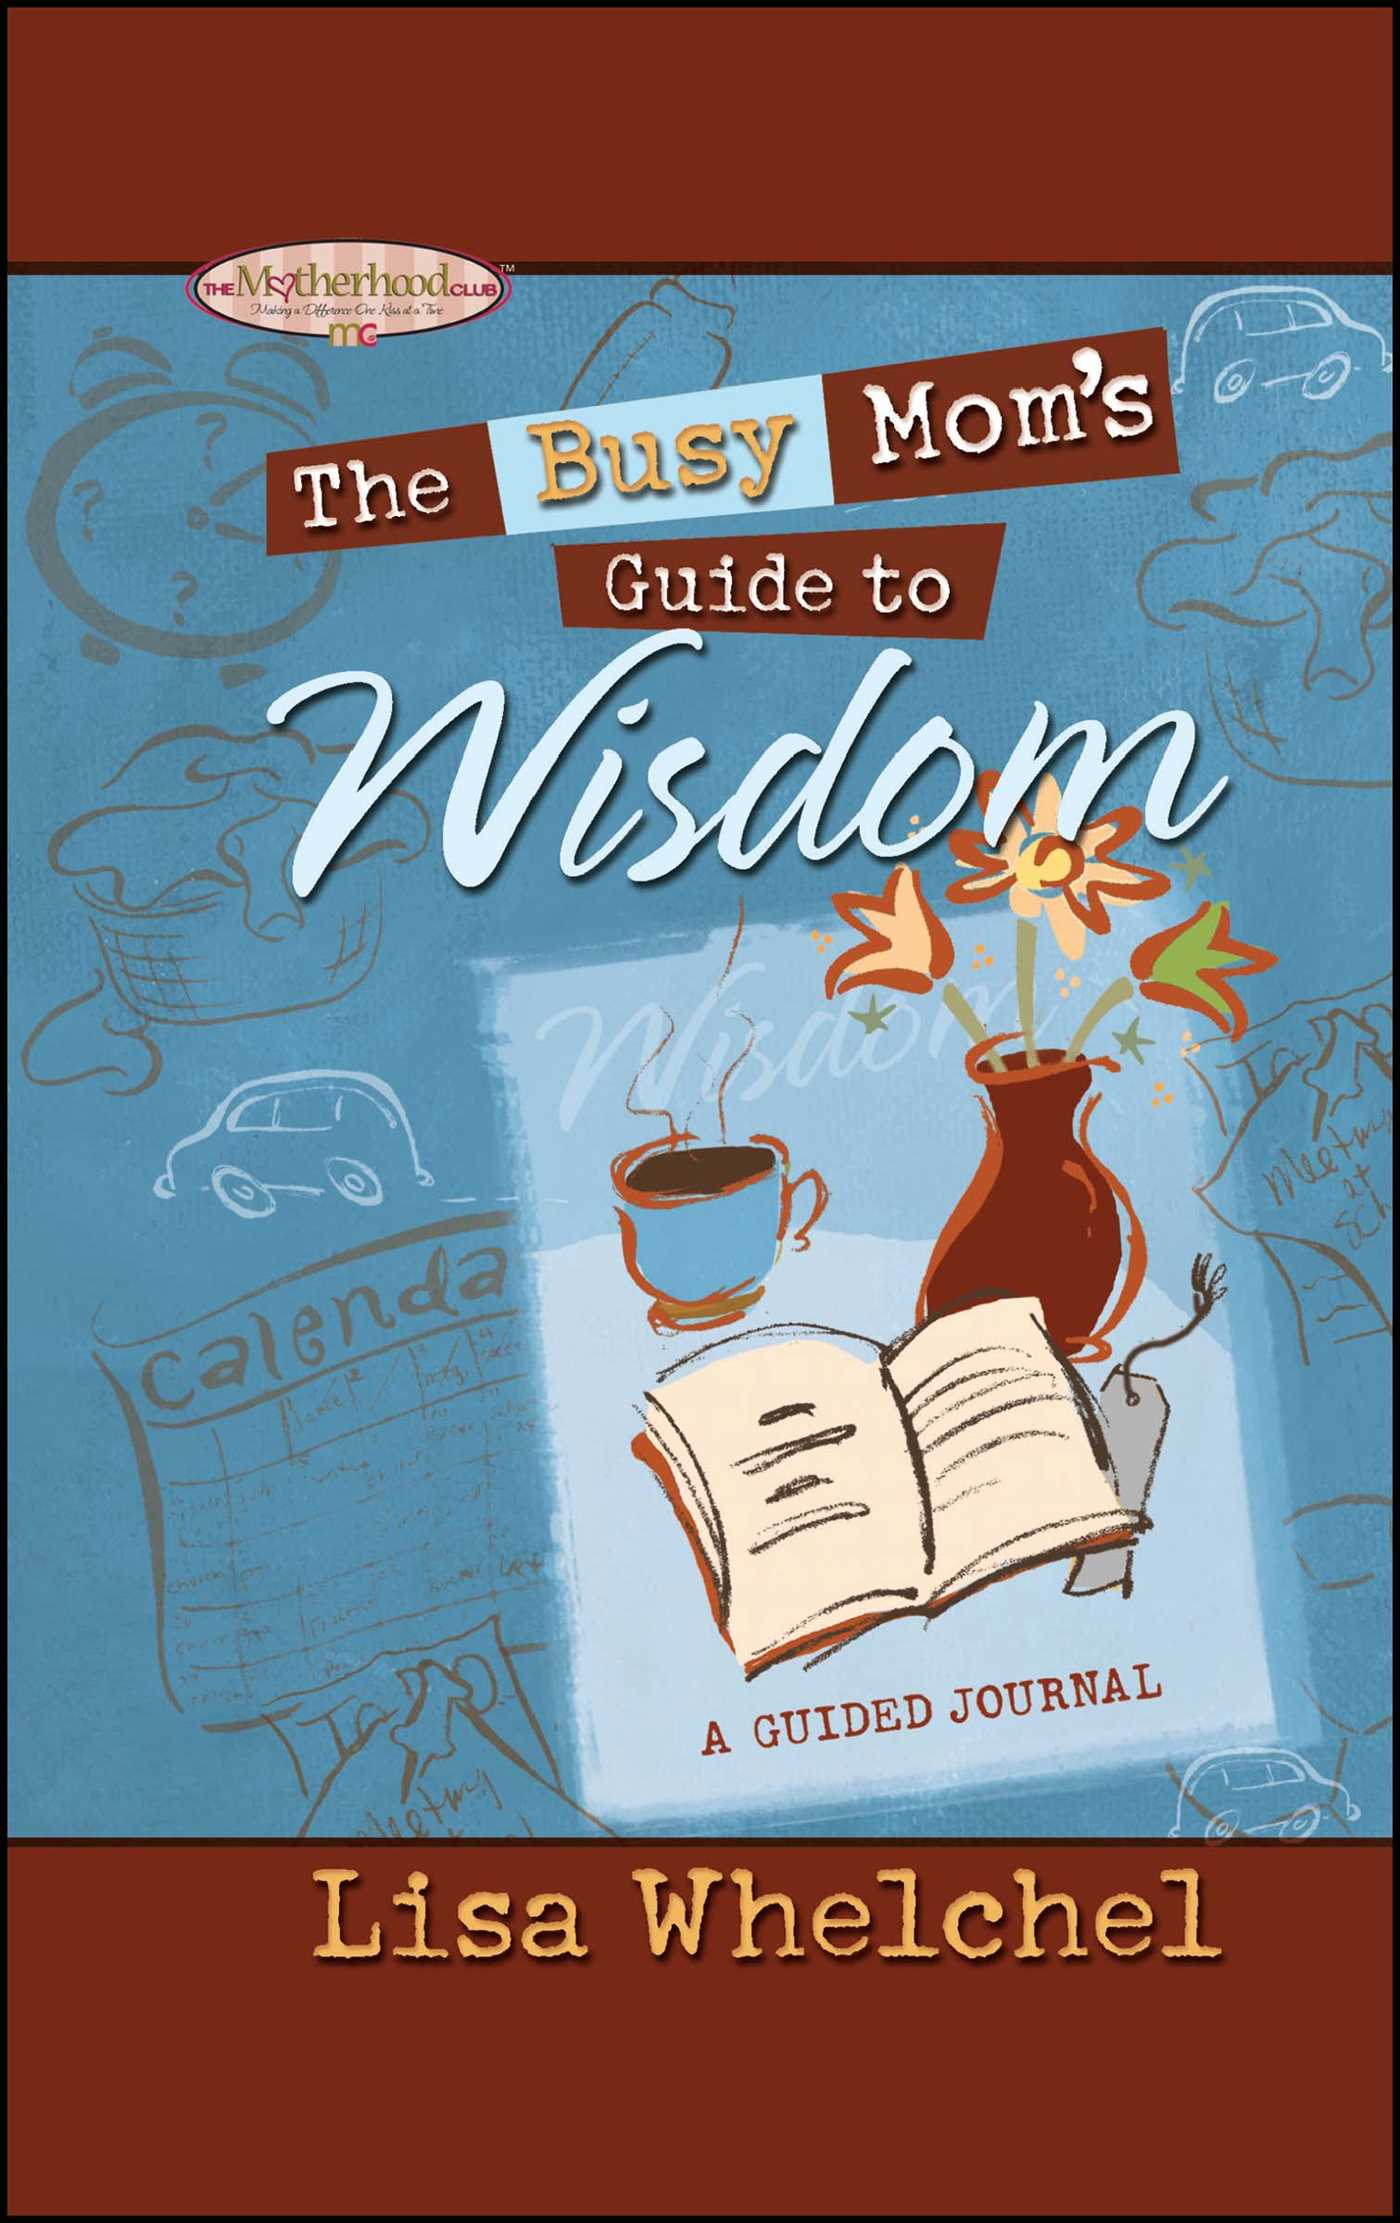 Busy moms guide to wisdom 9781451643237 hr